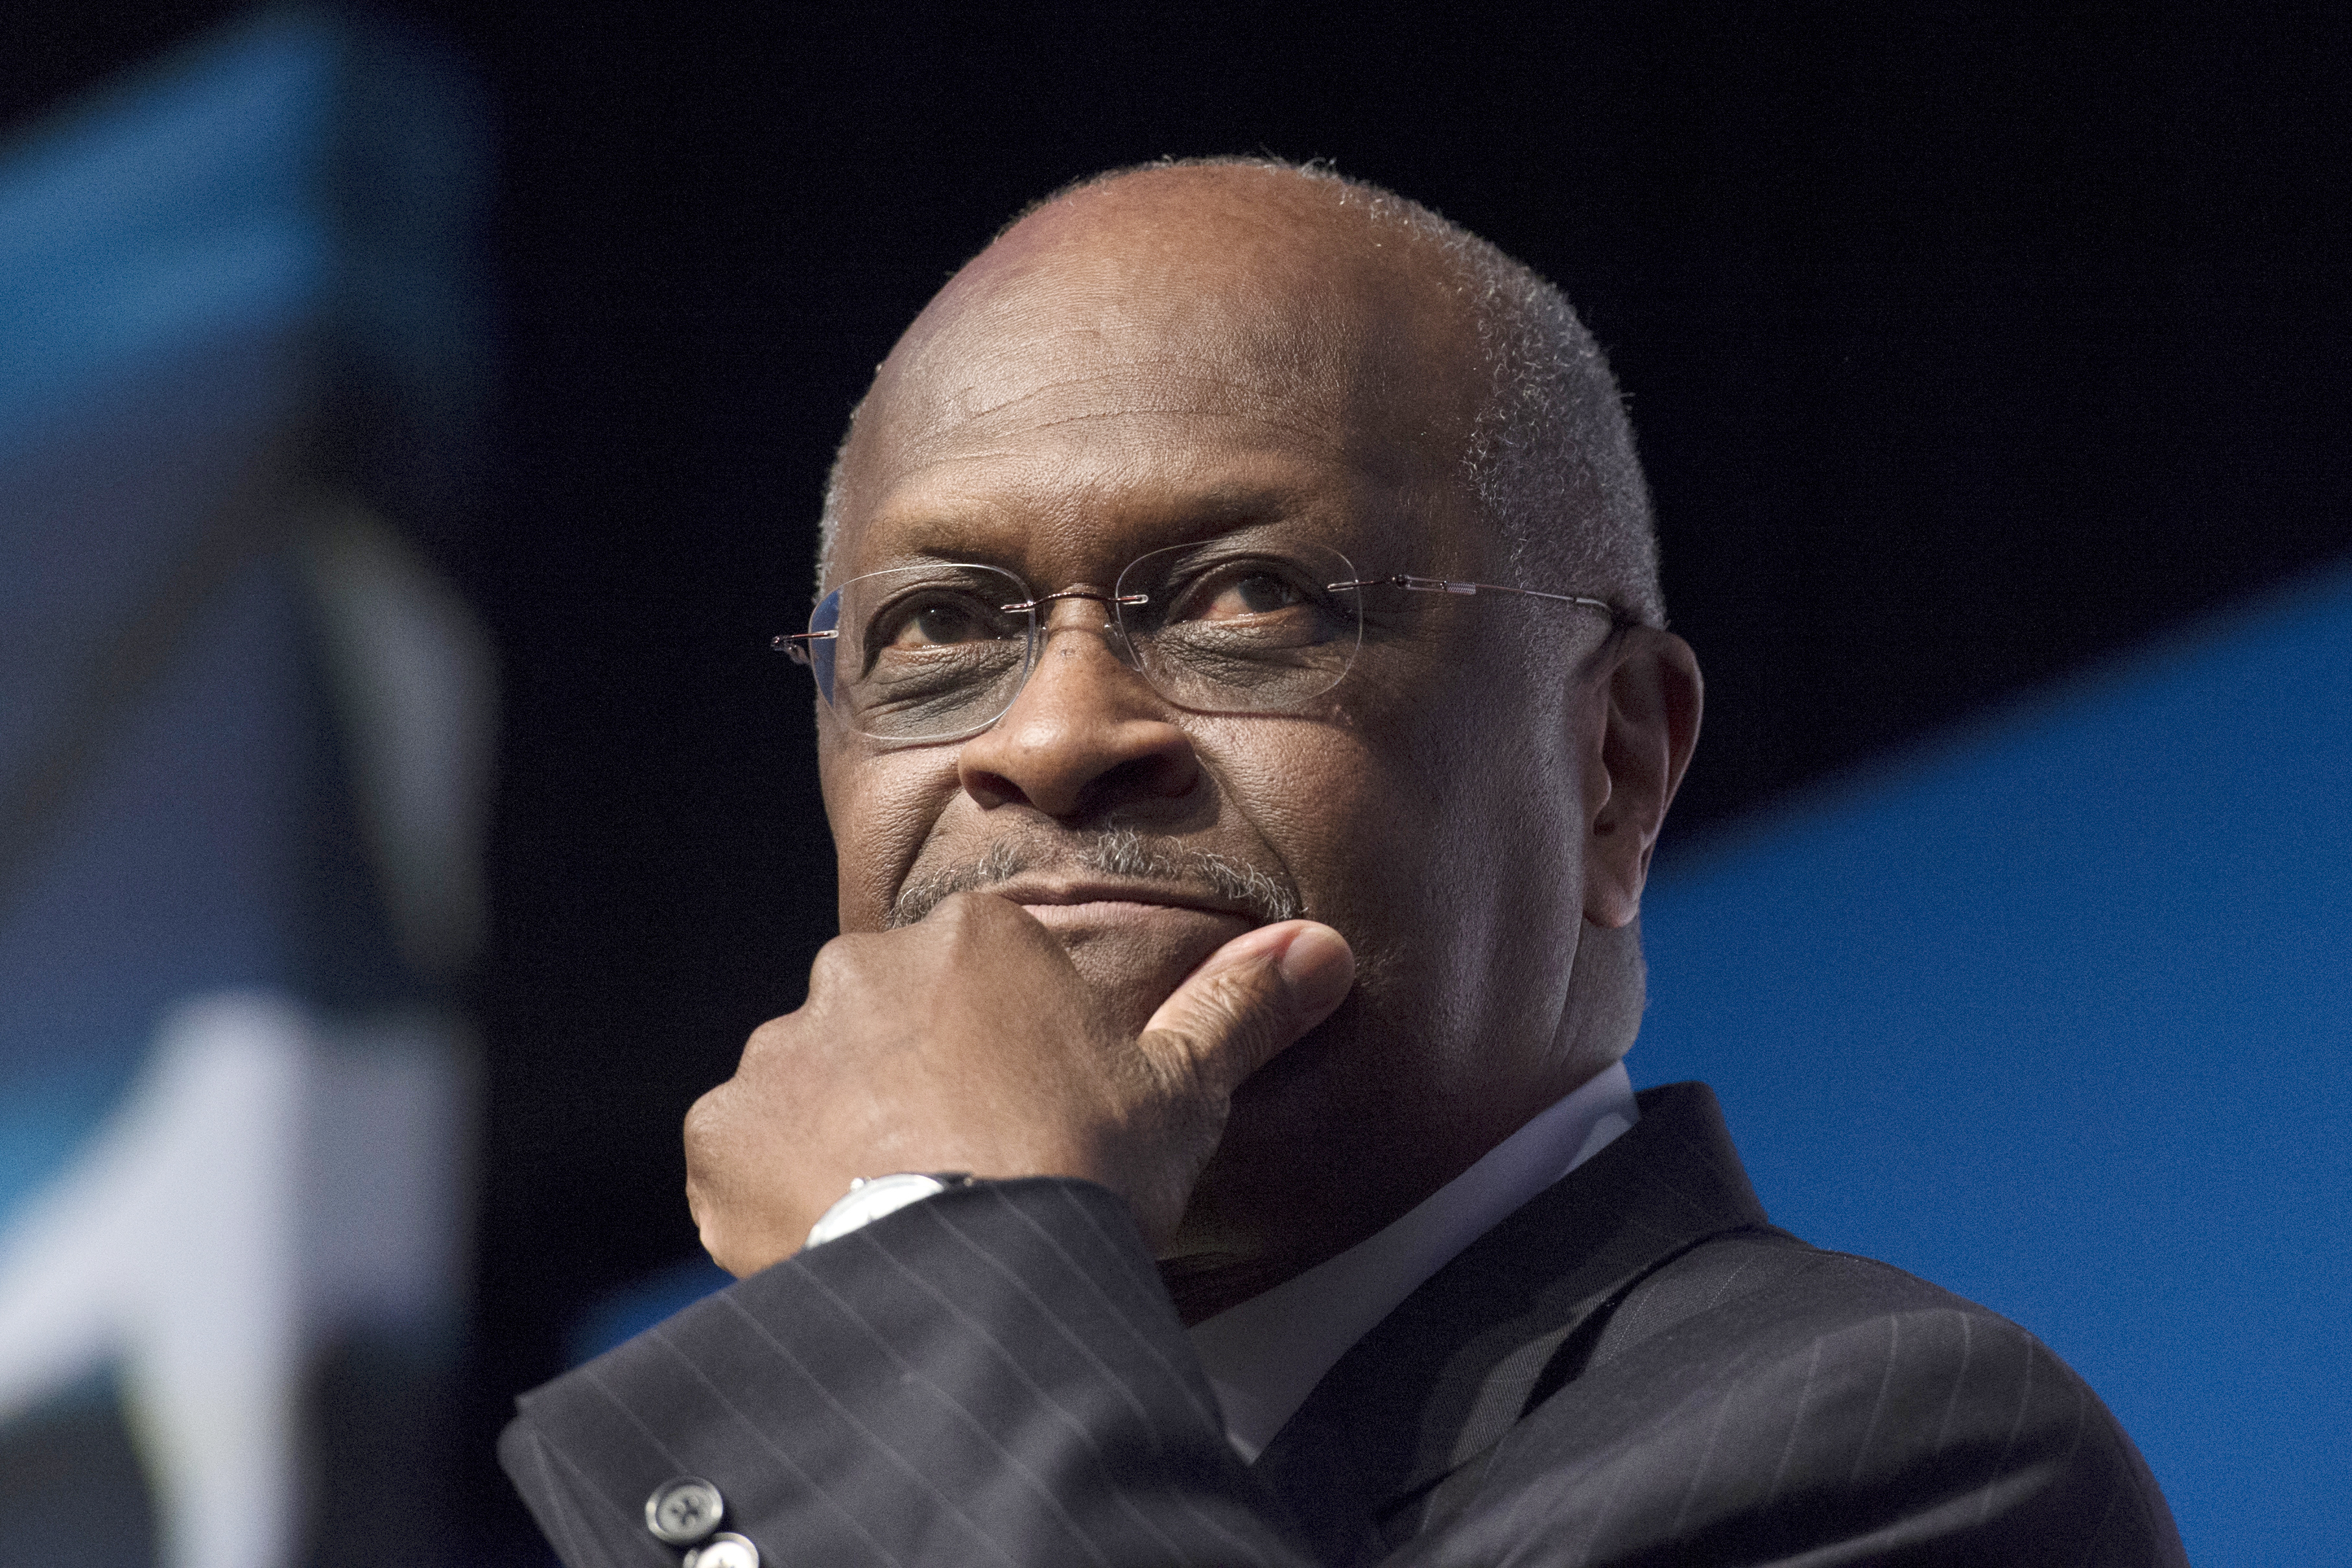 Herman Cain: Half of blacks 'brainwashed' by media into hating Donald Trump